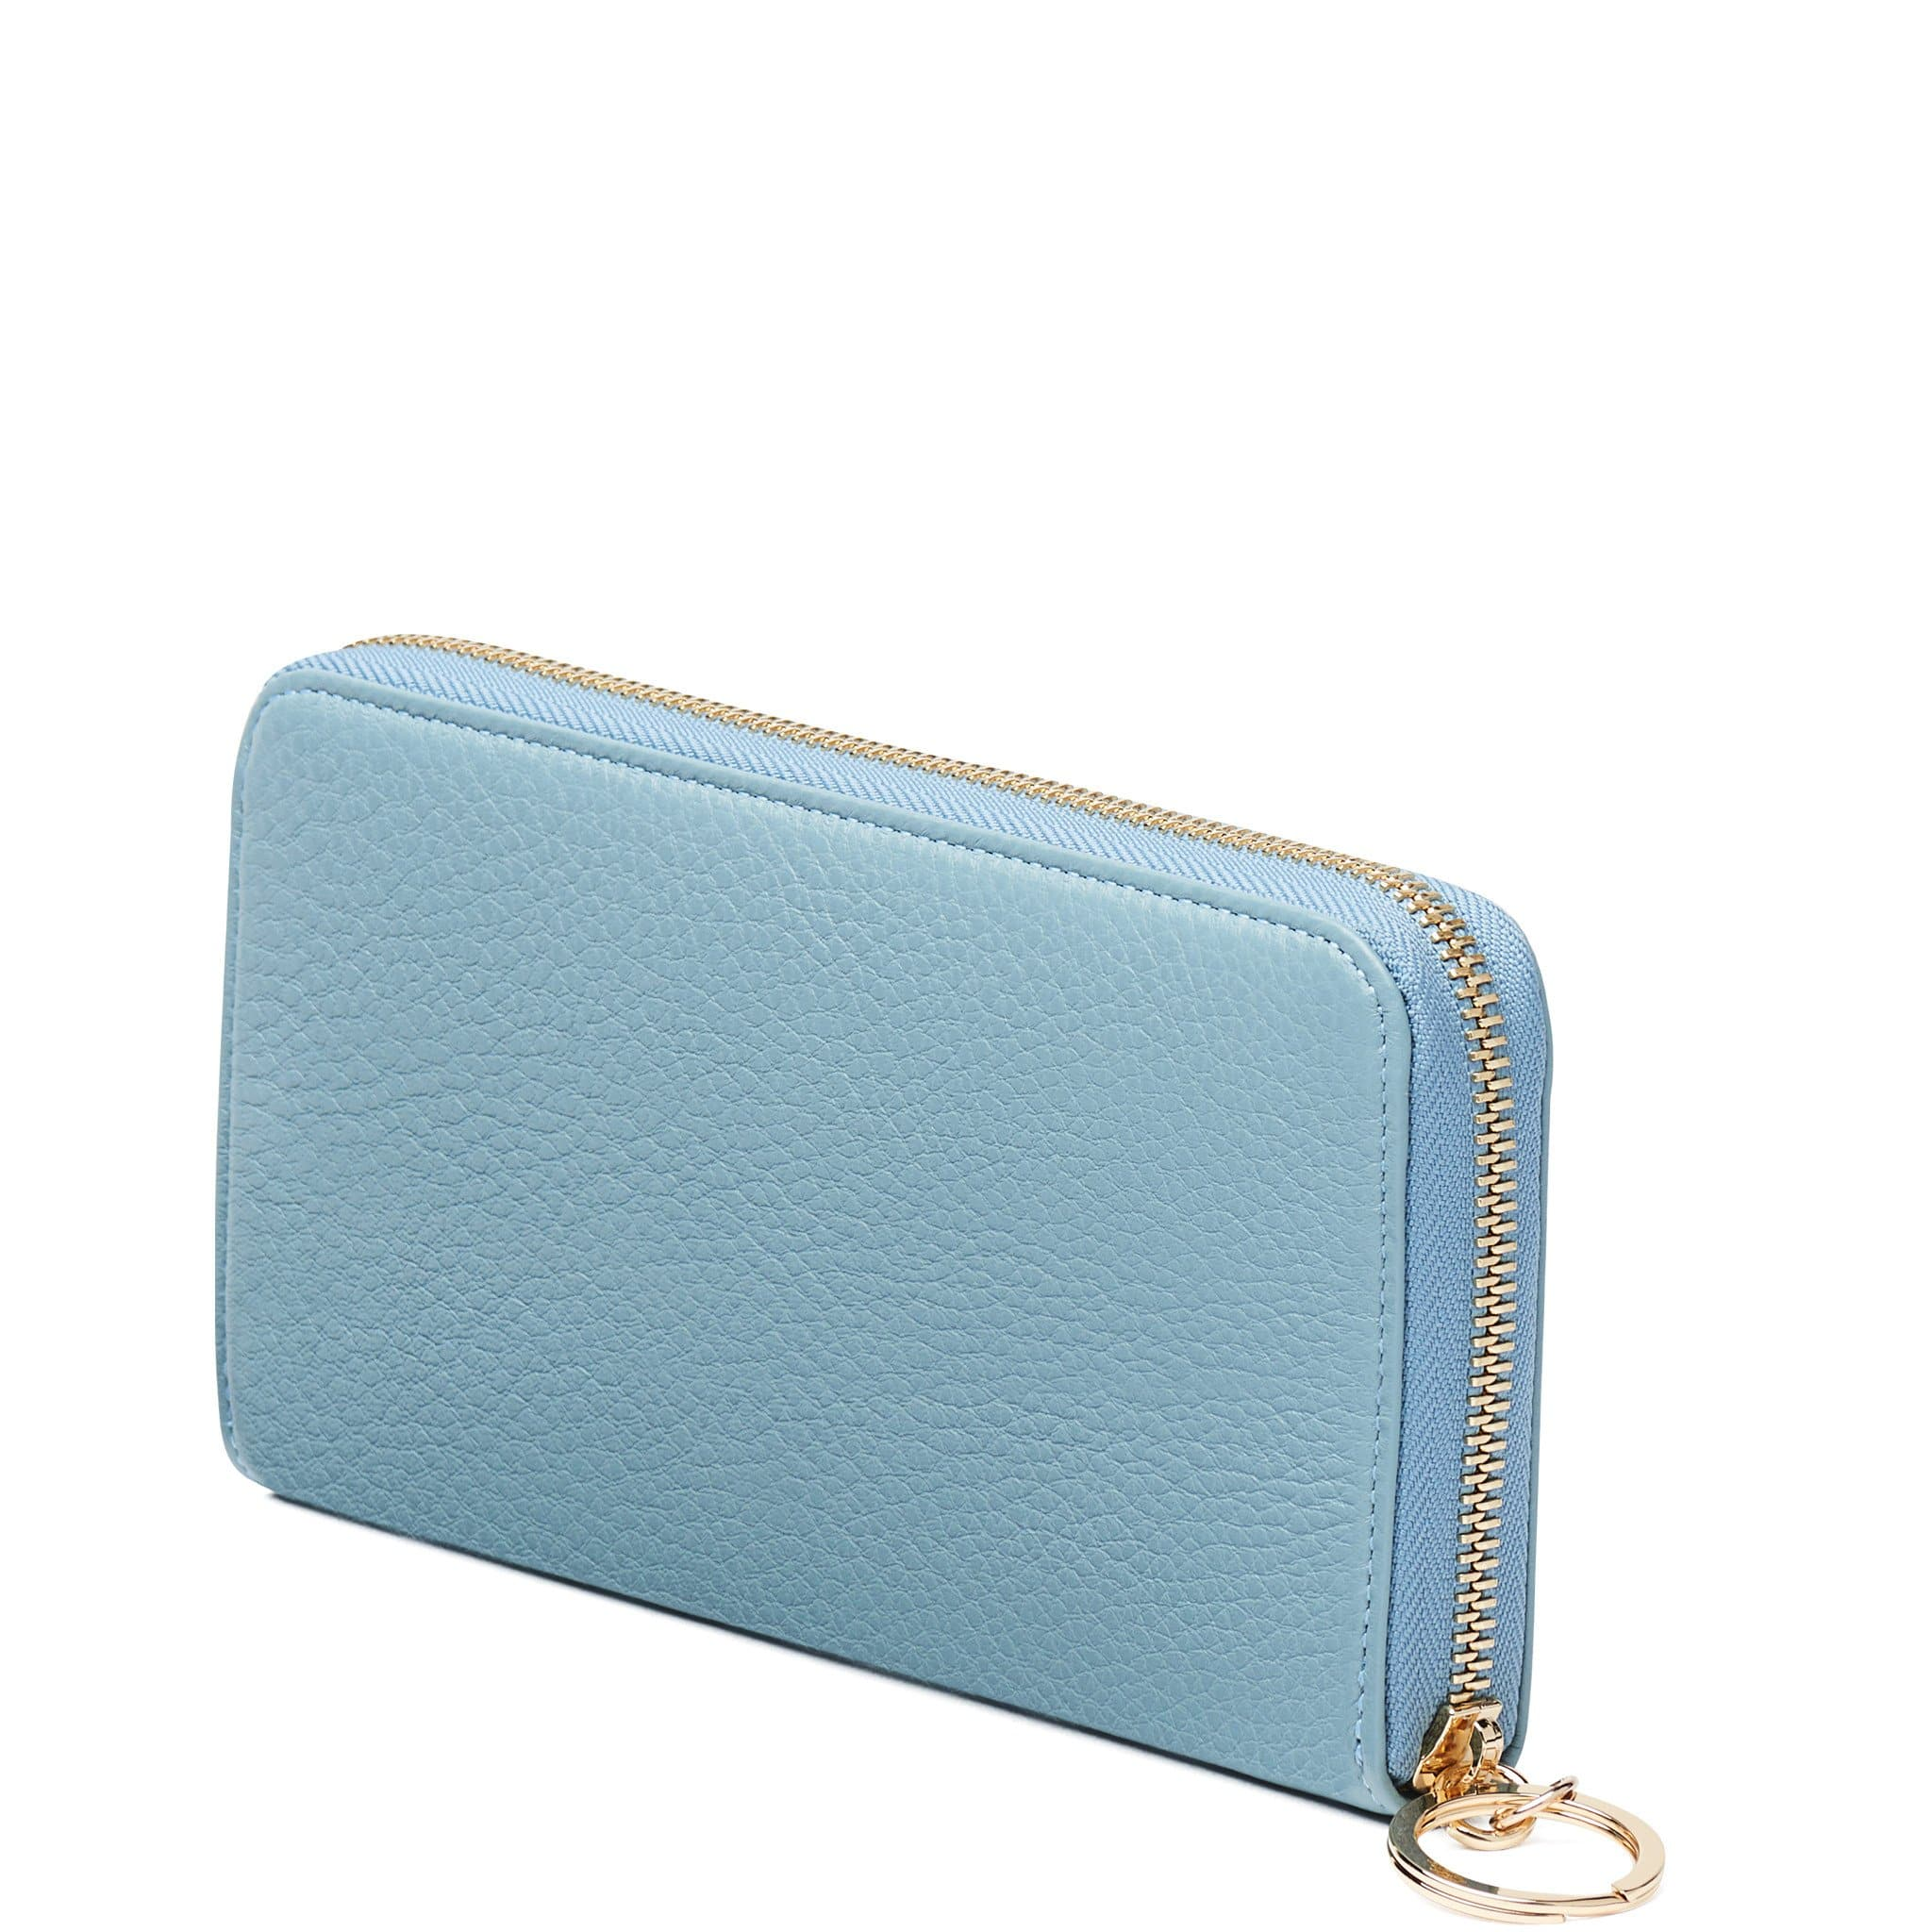 Full Zip Around Wallet - Powder Blue - OAD NEW YORK - 3